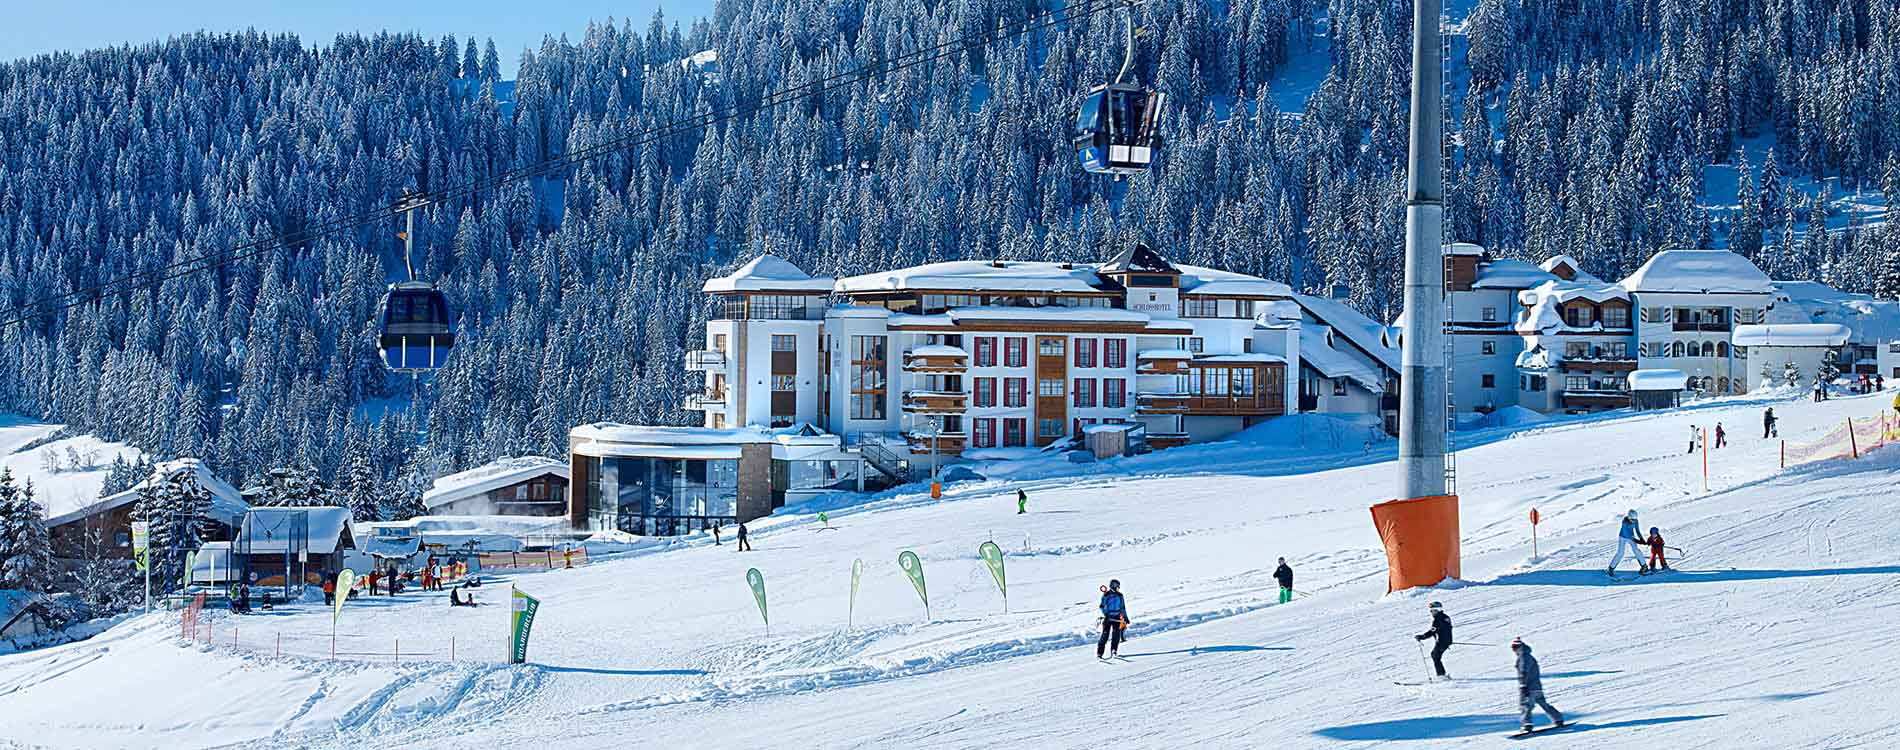 Family fun in Fiss Schlosshotel Fiss Tyrol Niche Destinations